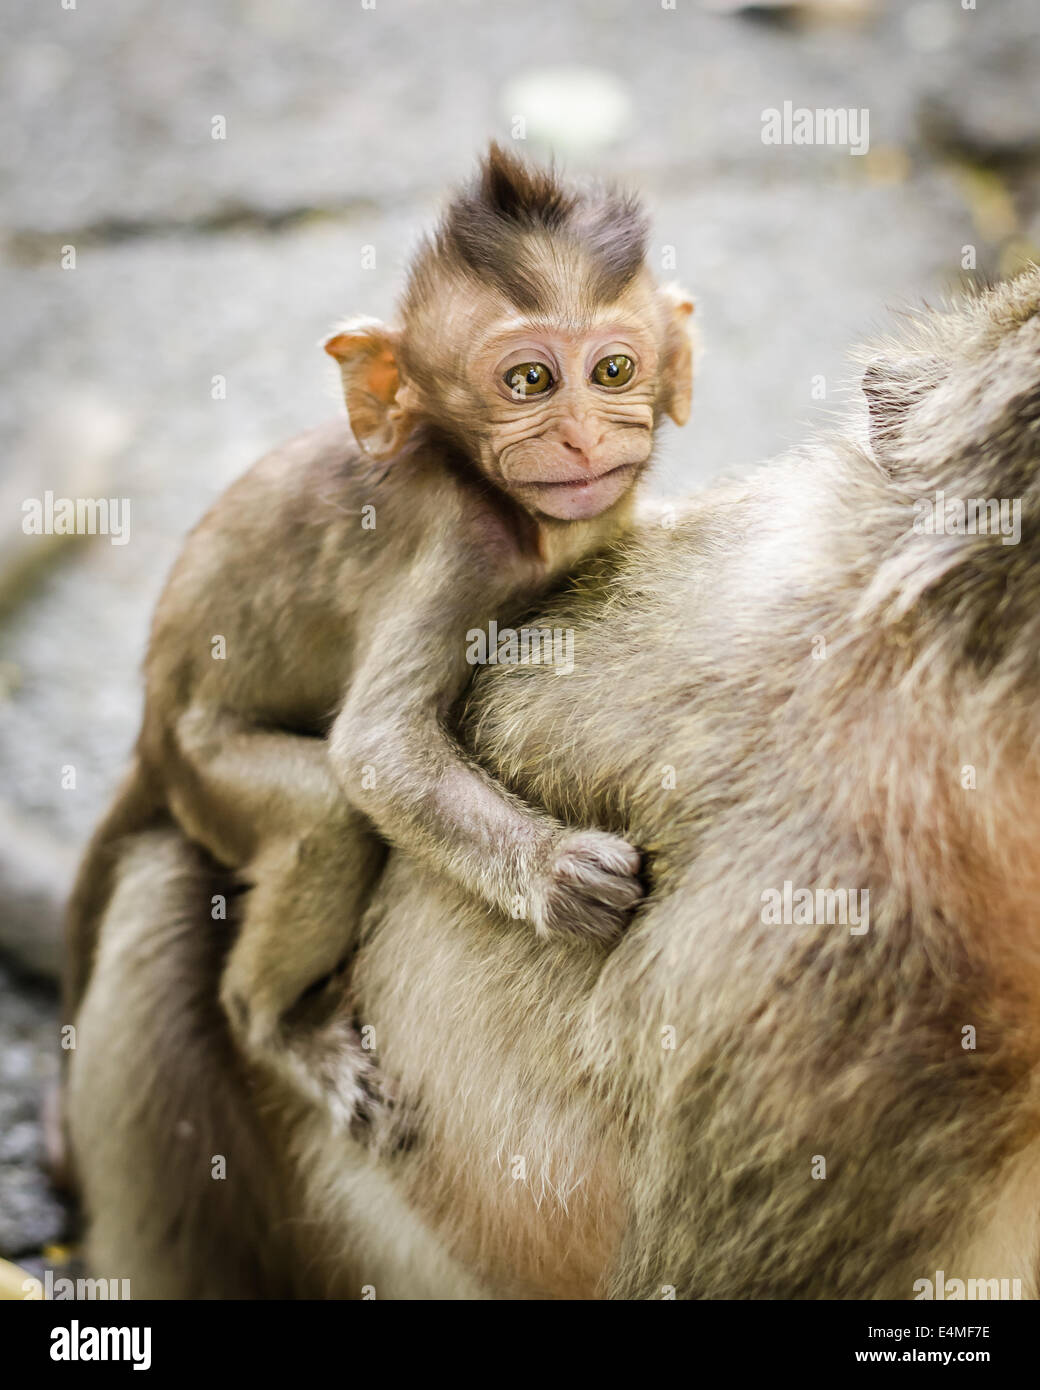 Cute Monkeys A Cute Monkey Lives In A Natural Forest Of Thailand Stock Photo Alamy